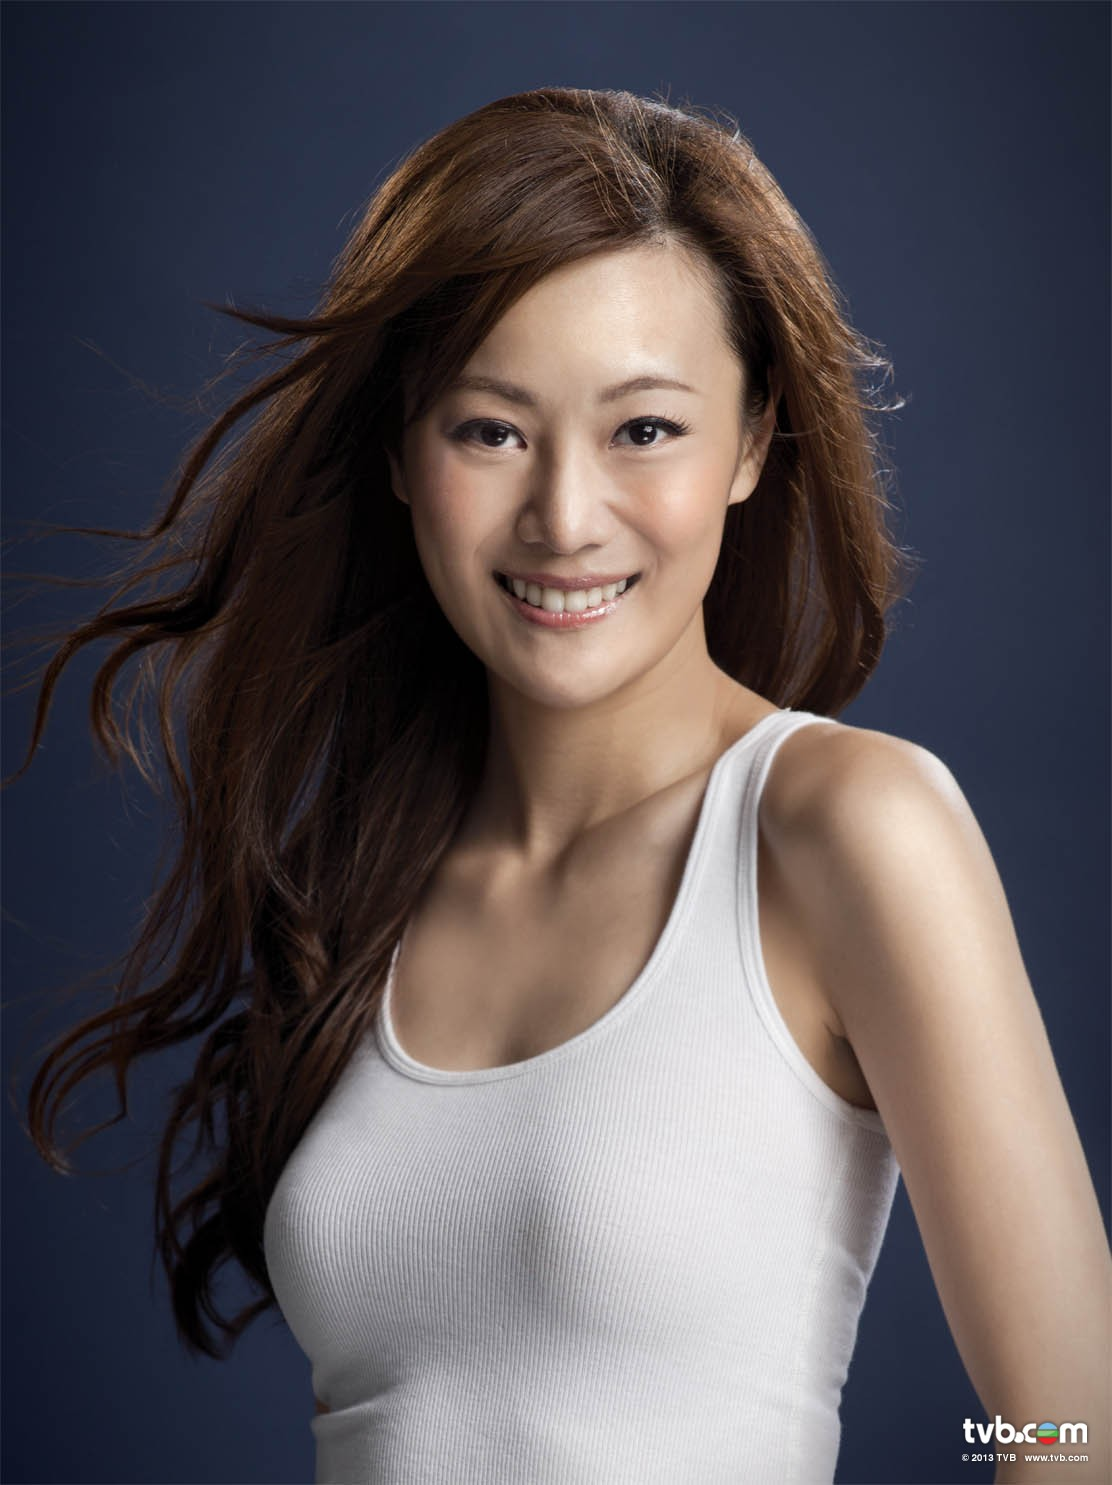 Miss hong kong 2013 contestant alleged leaked sextape Part 4 8